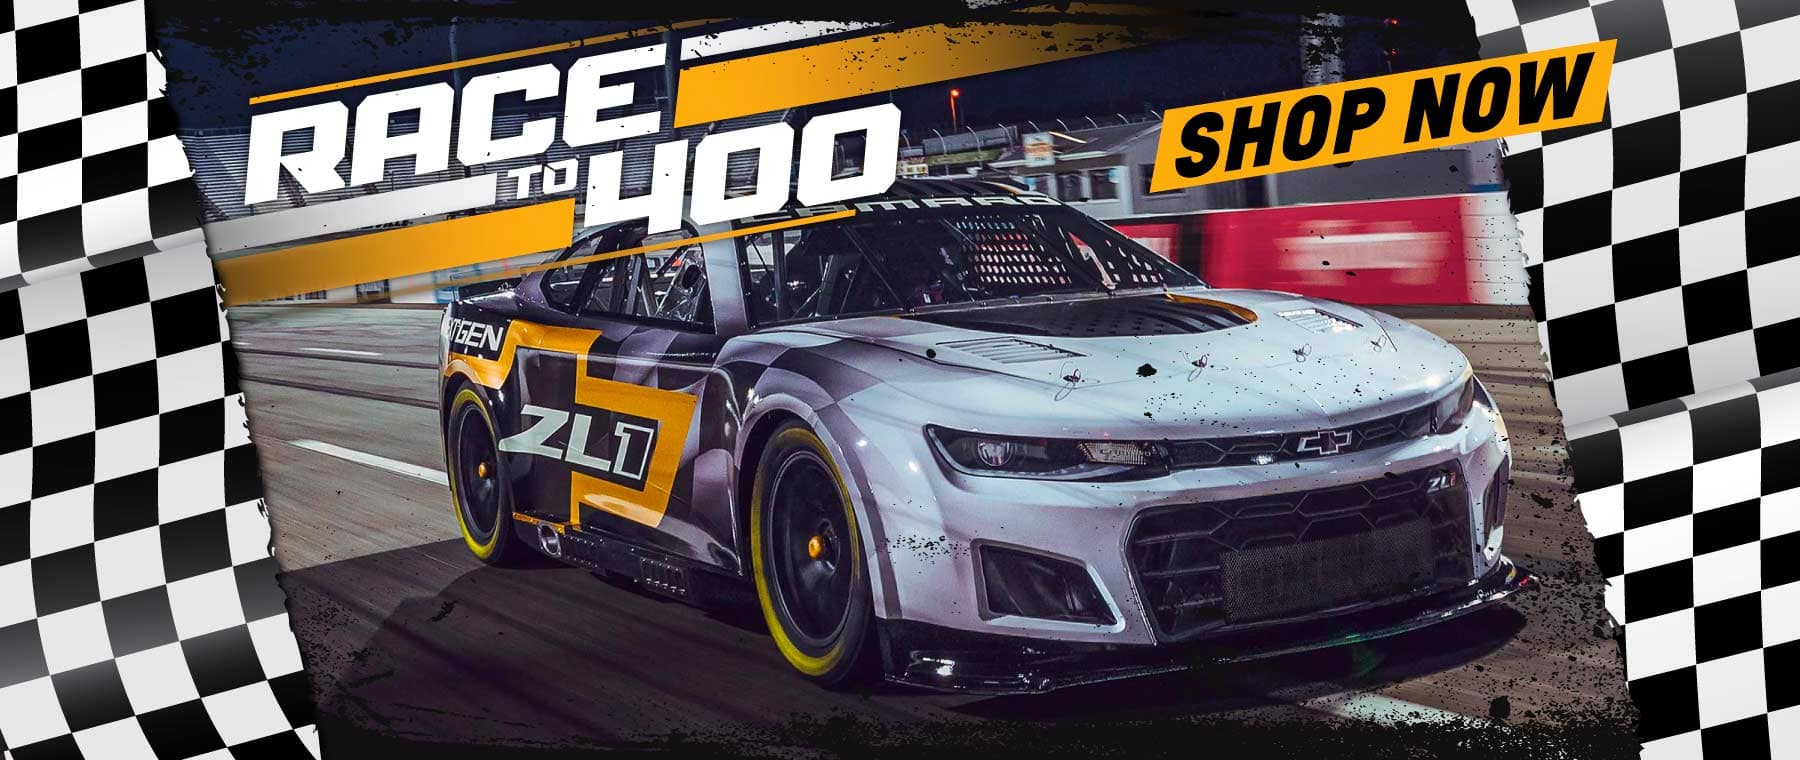 Race to 400, Shop now